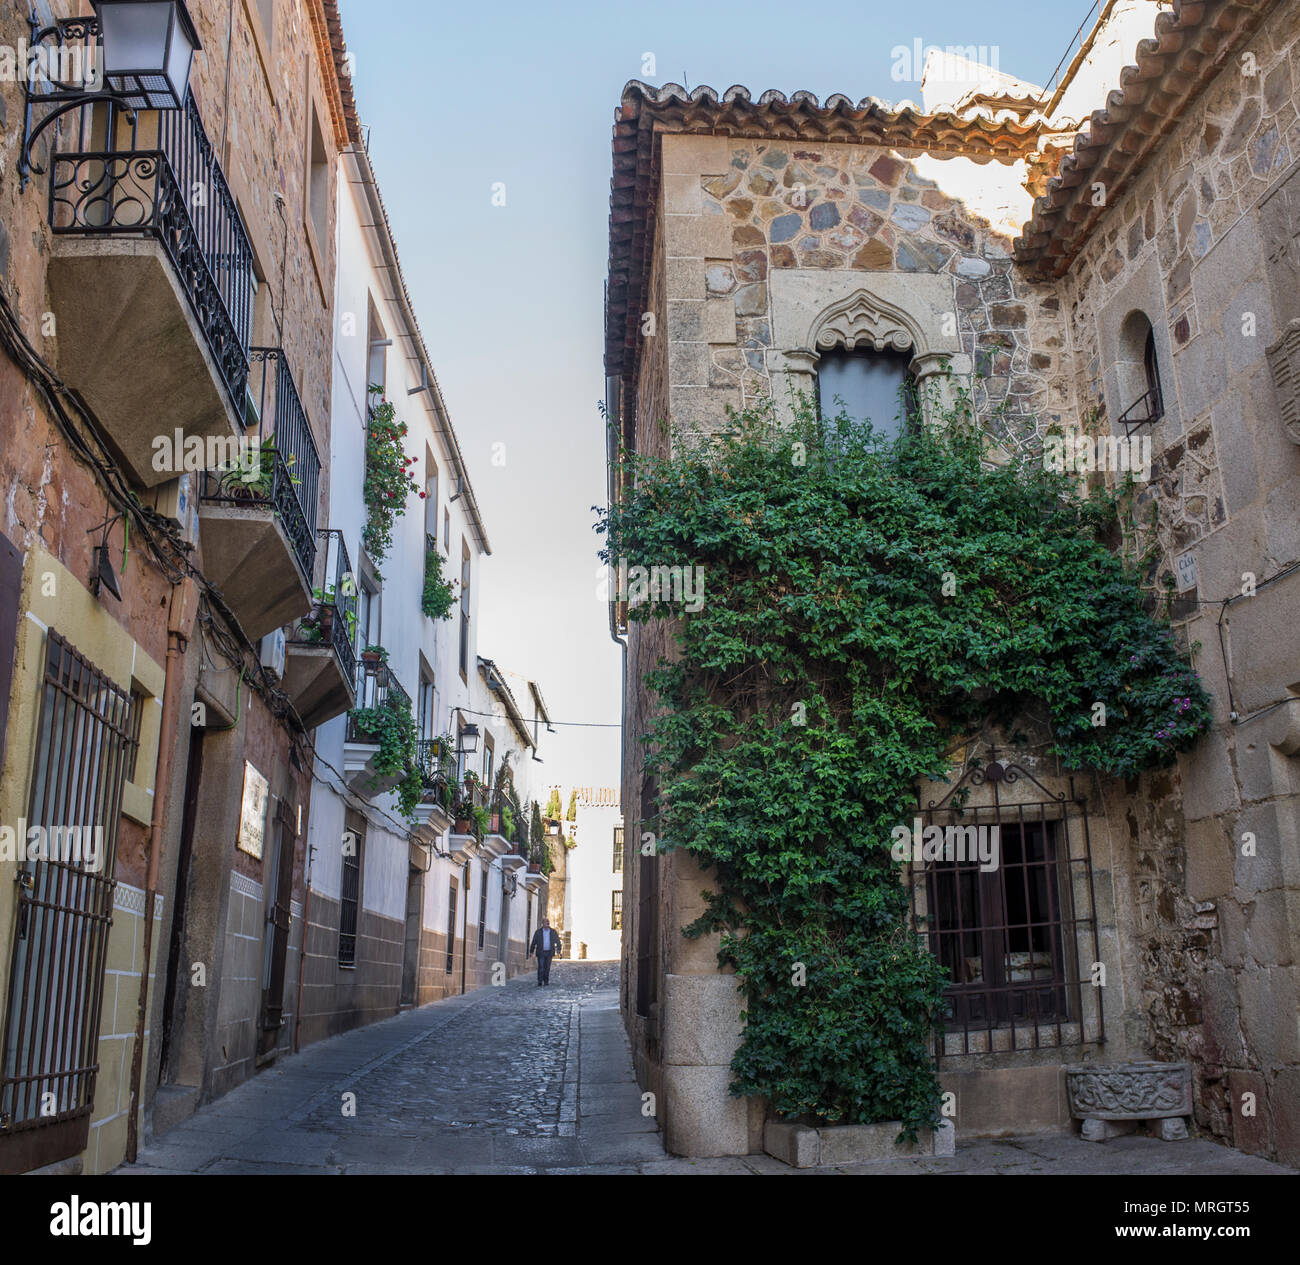 Caceres, Spain - 2017 october 17th: Visitor walking beside the Hospital of Pilgrim Knights, Caceres historic quarter, Spain - Stock Image